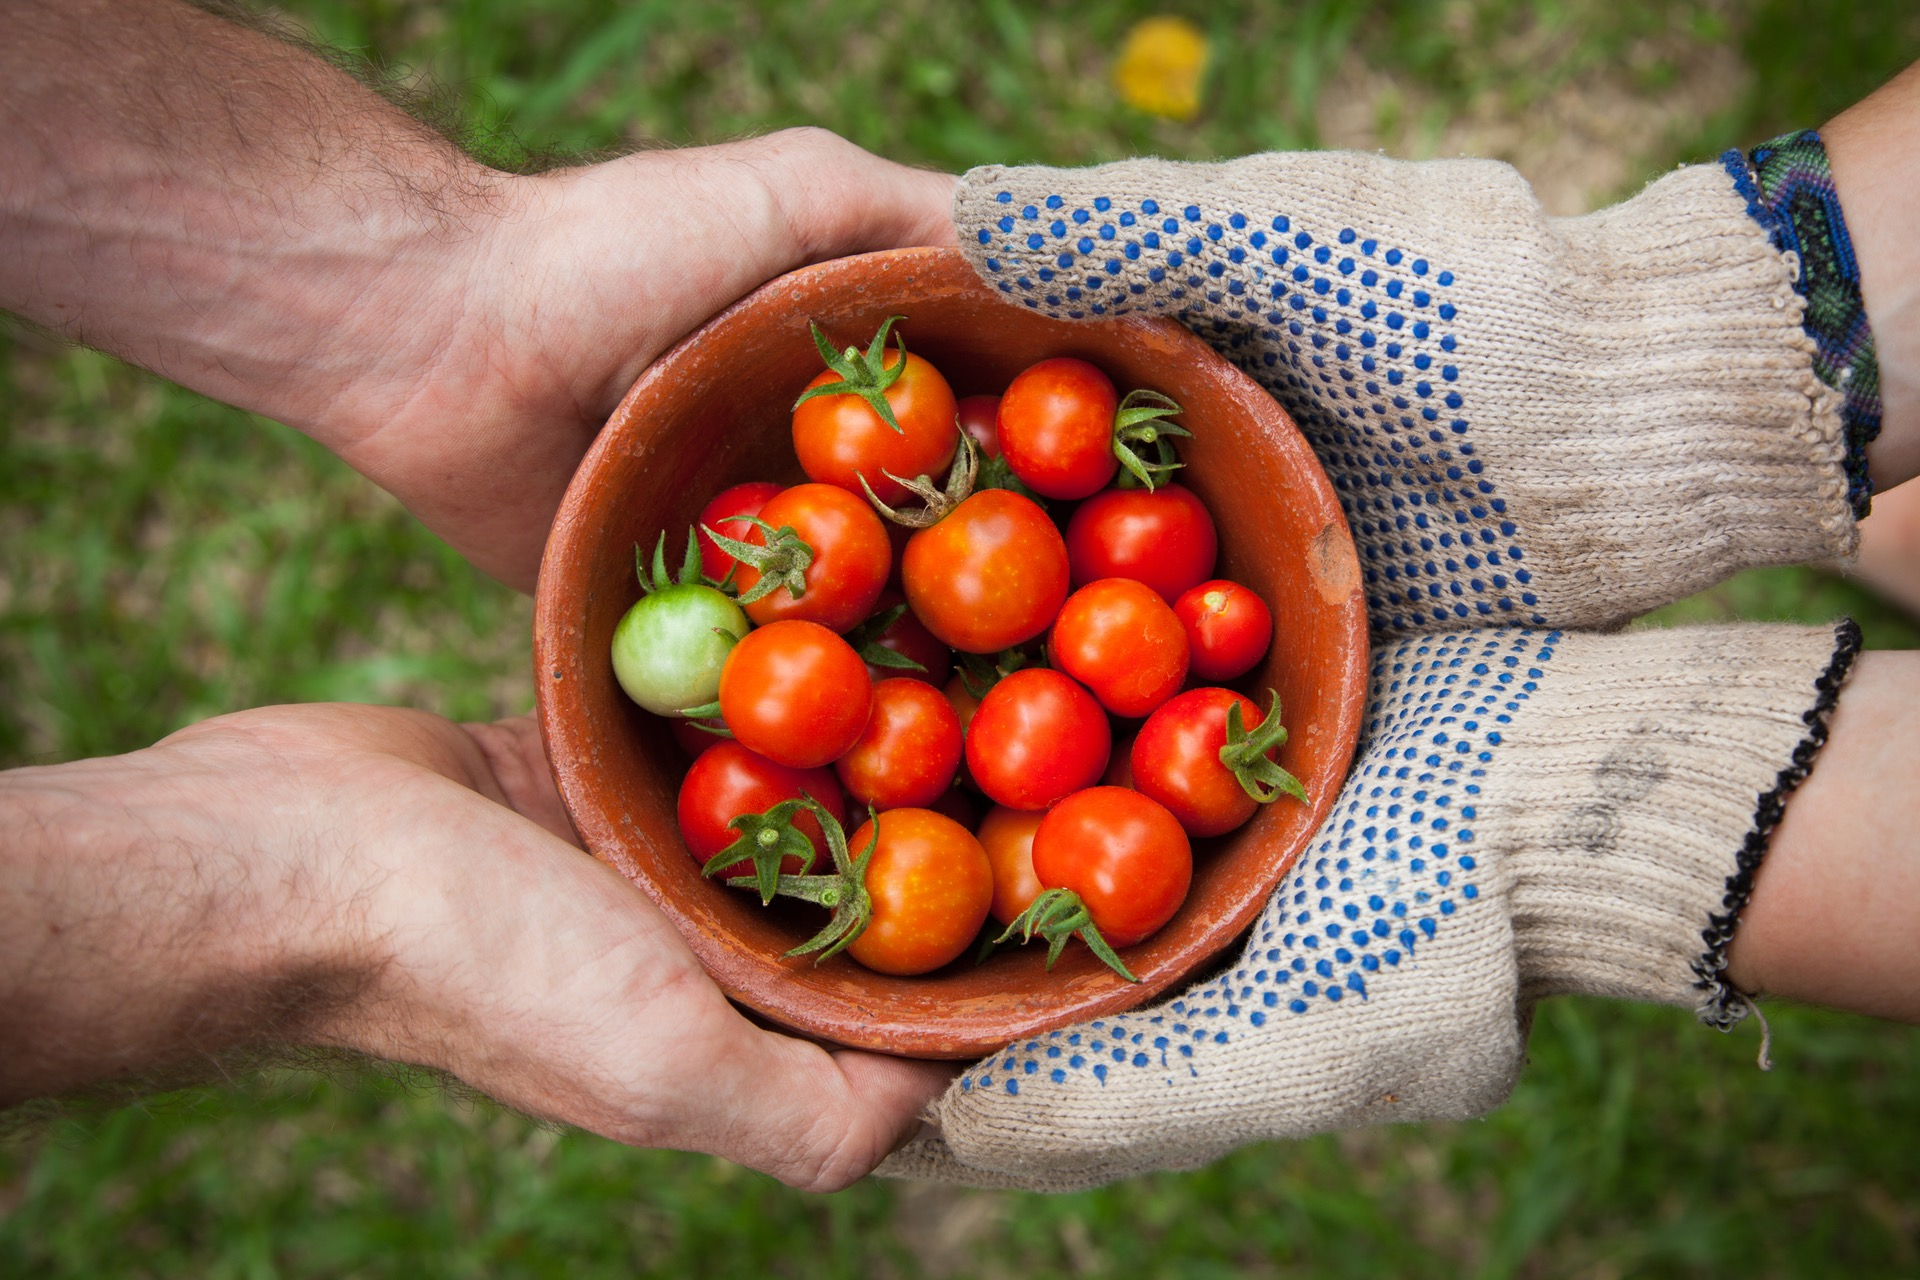 giving tomatoes